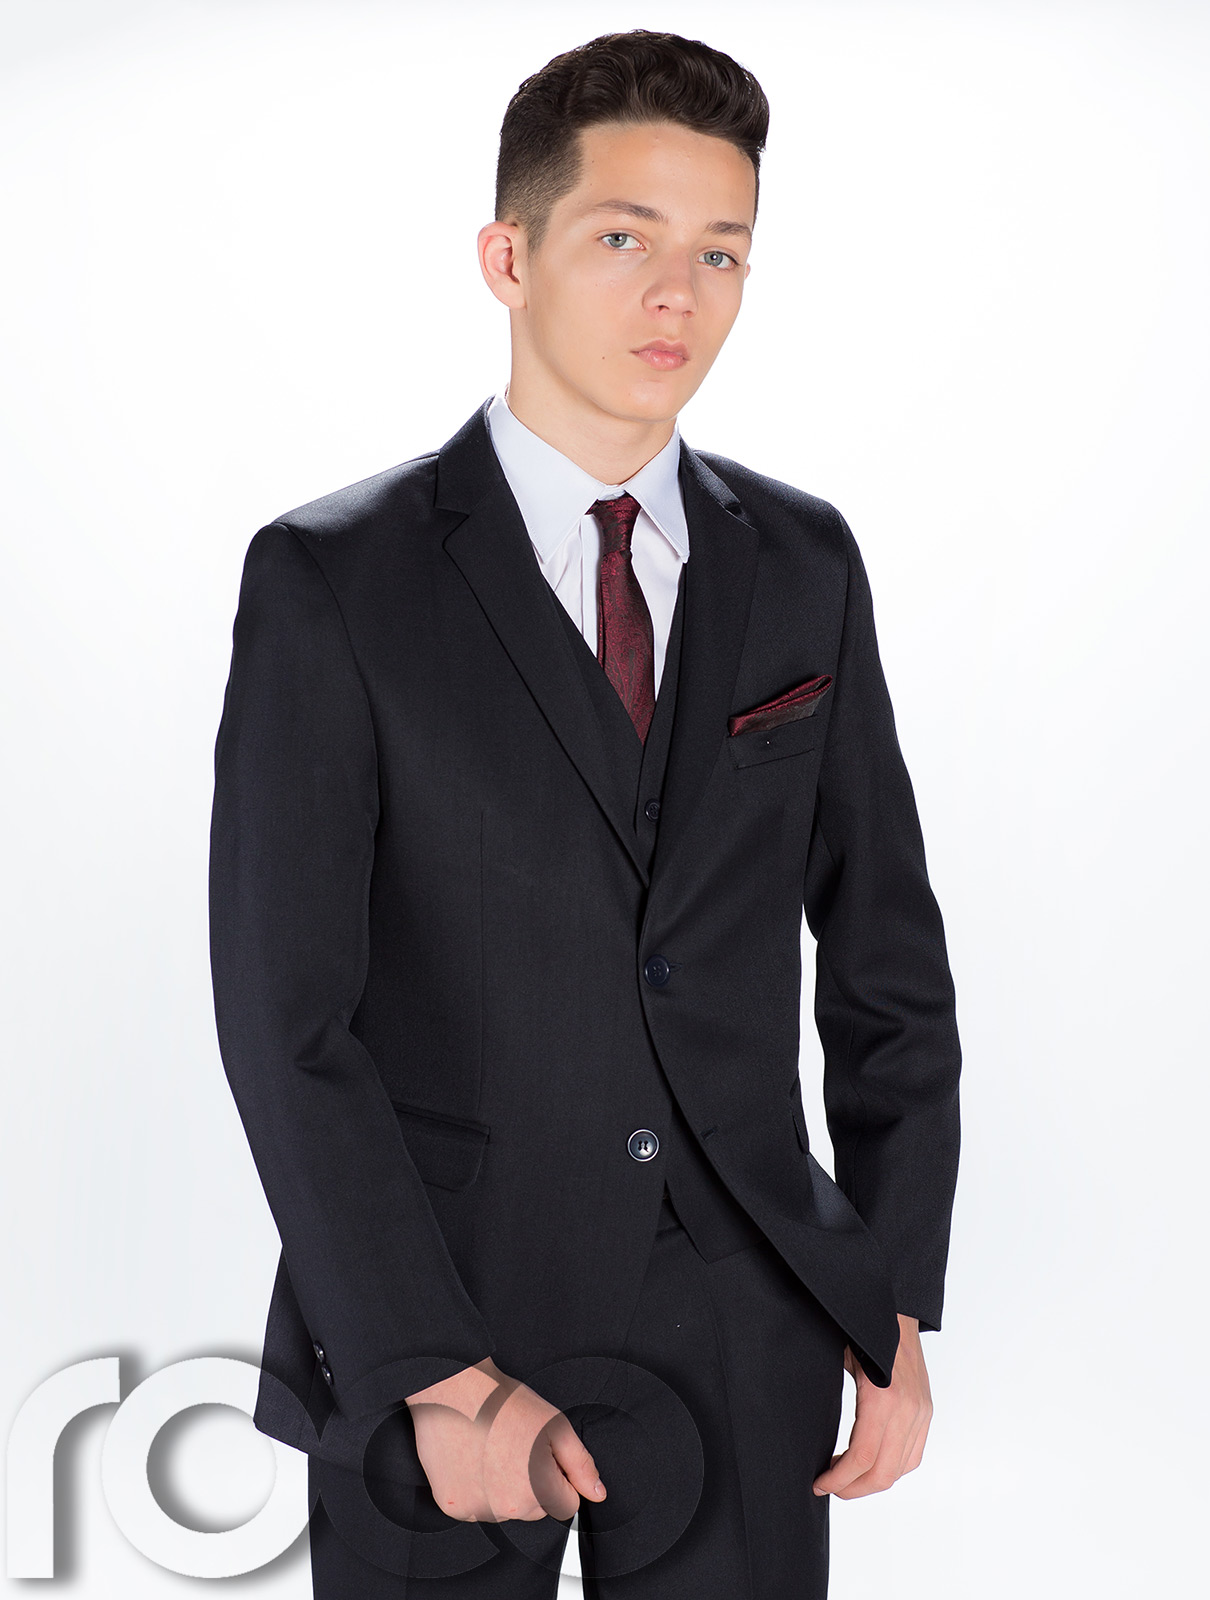 There are three basic types of suit sets for boys Whether a youngster is going to an elegant wedding or attending a birthday party at an upscale restaurant, boys' suit sets offer variety in .